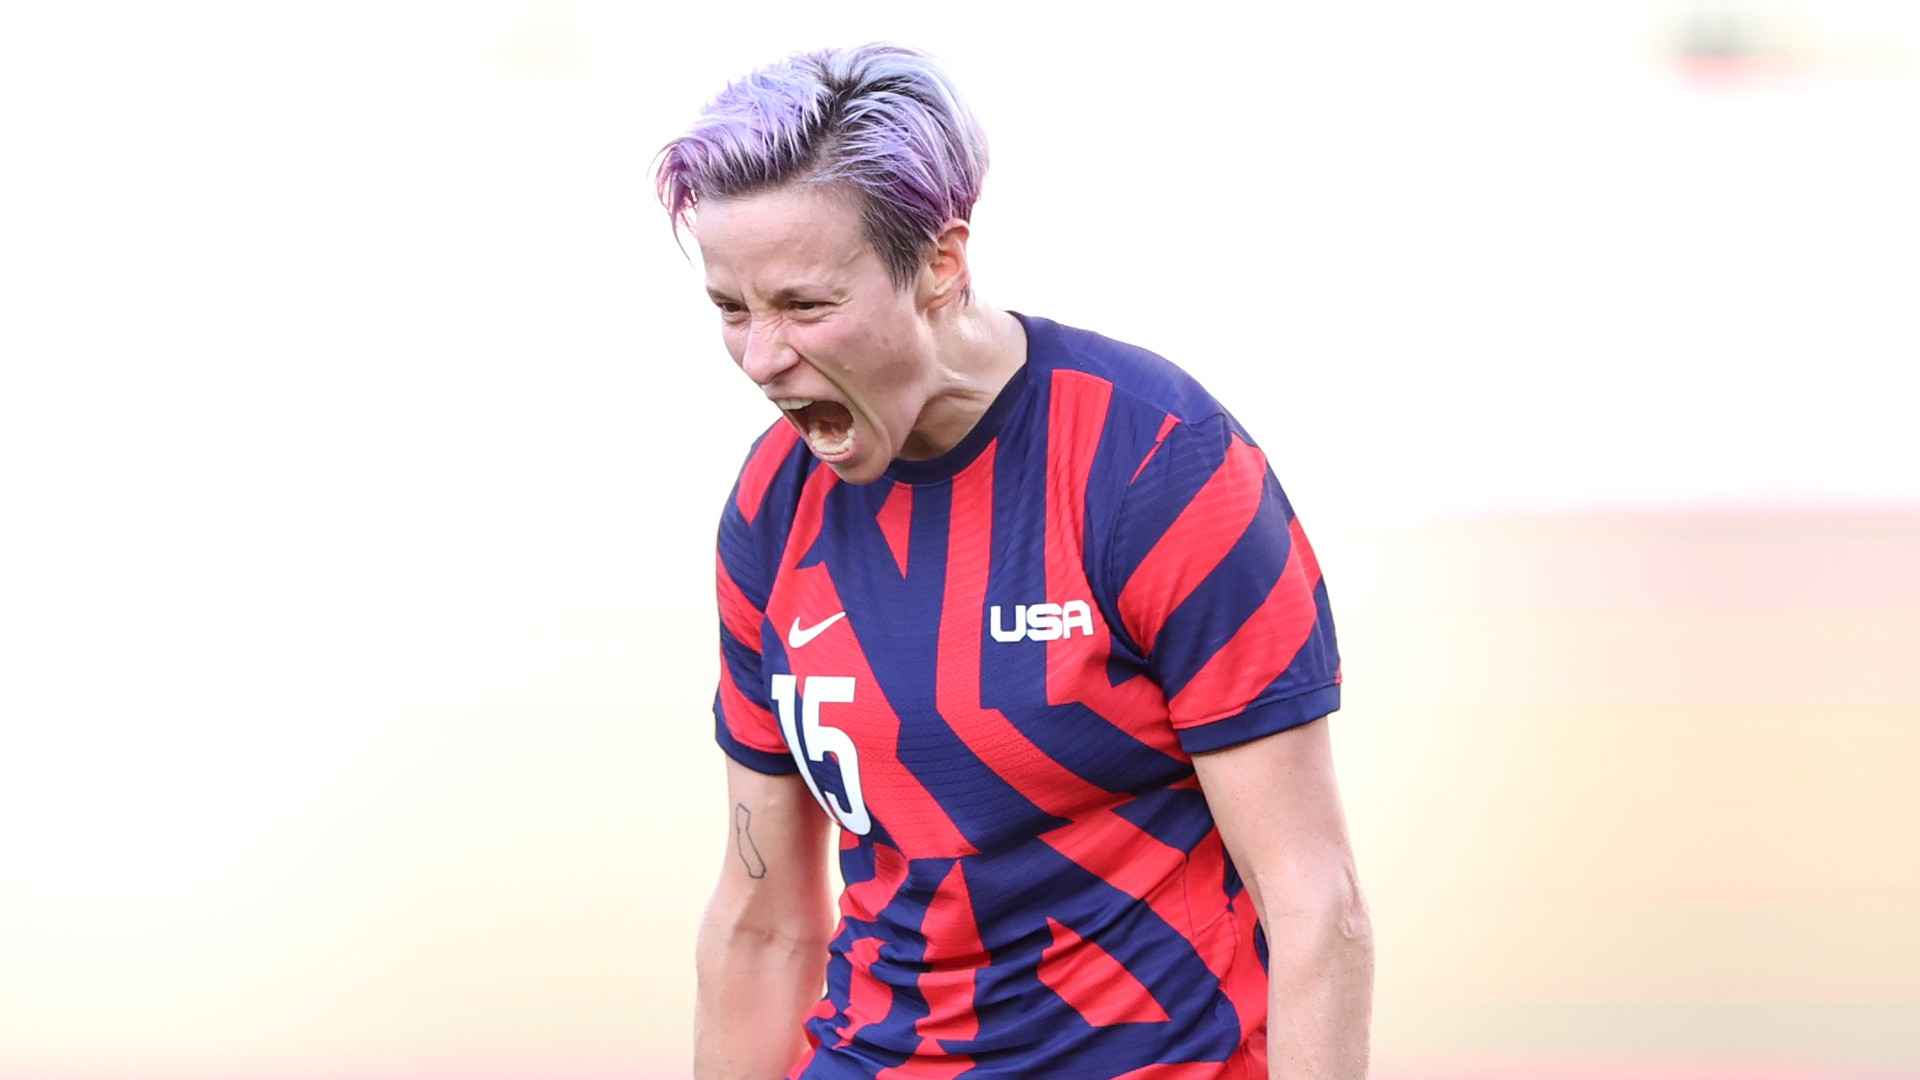 'That's why they call it an Olimpico' - USWNT's Rapinoe scores direct from a corner in bronze medal match vs Australia